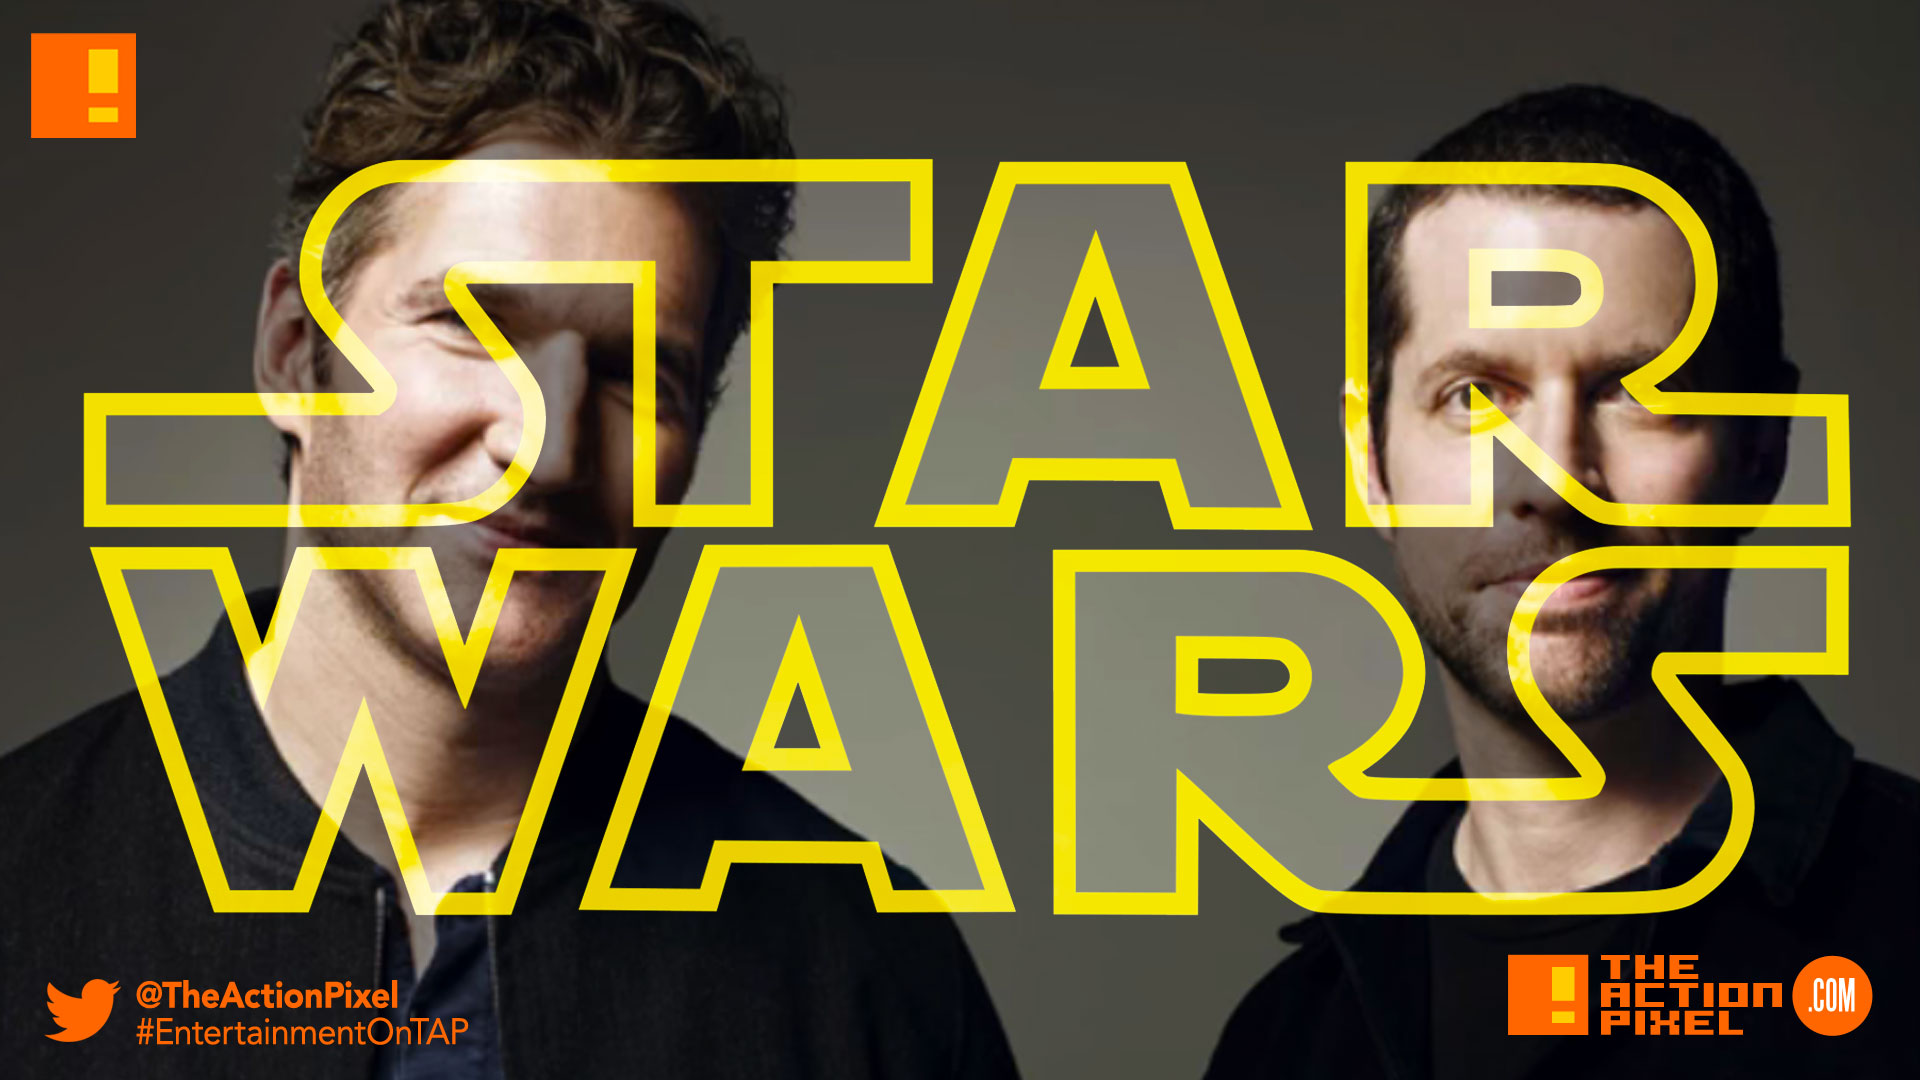 David Benioff , game of thrones, star wars, D.B. Weiss, the action pixel, entertainment on tap, disney, lucasfilm, kathleen kennedy,